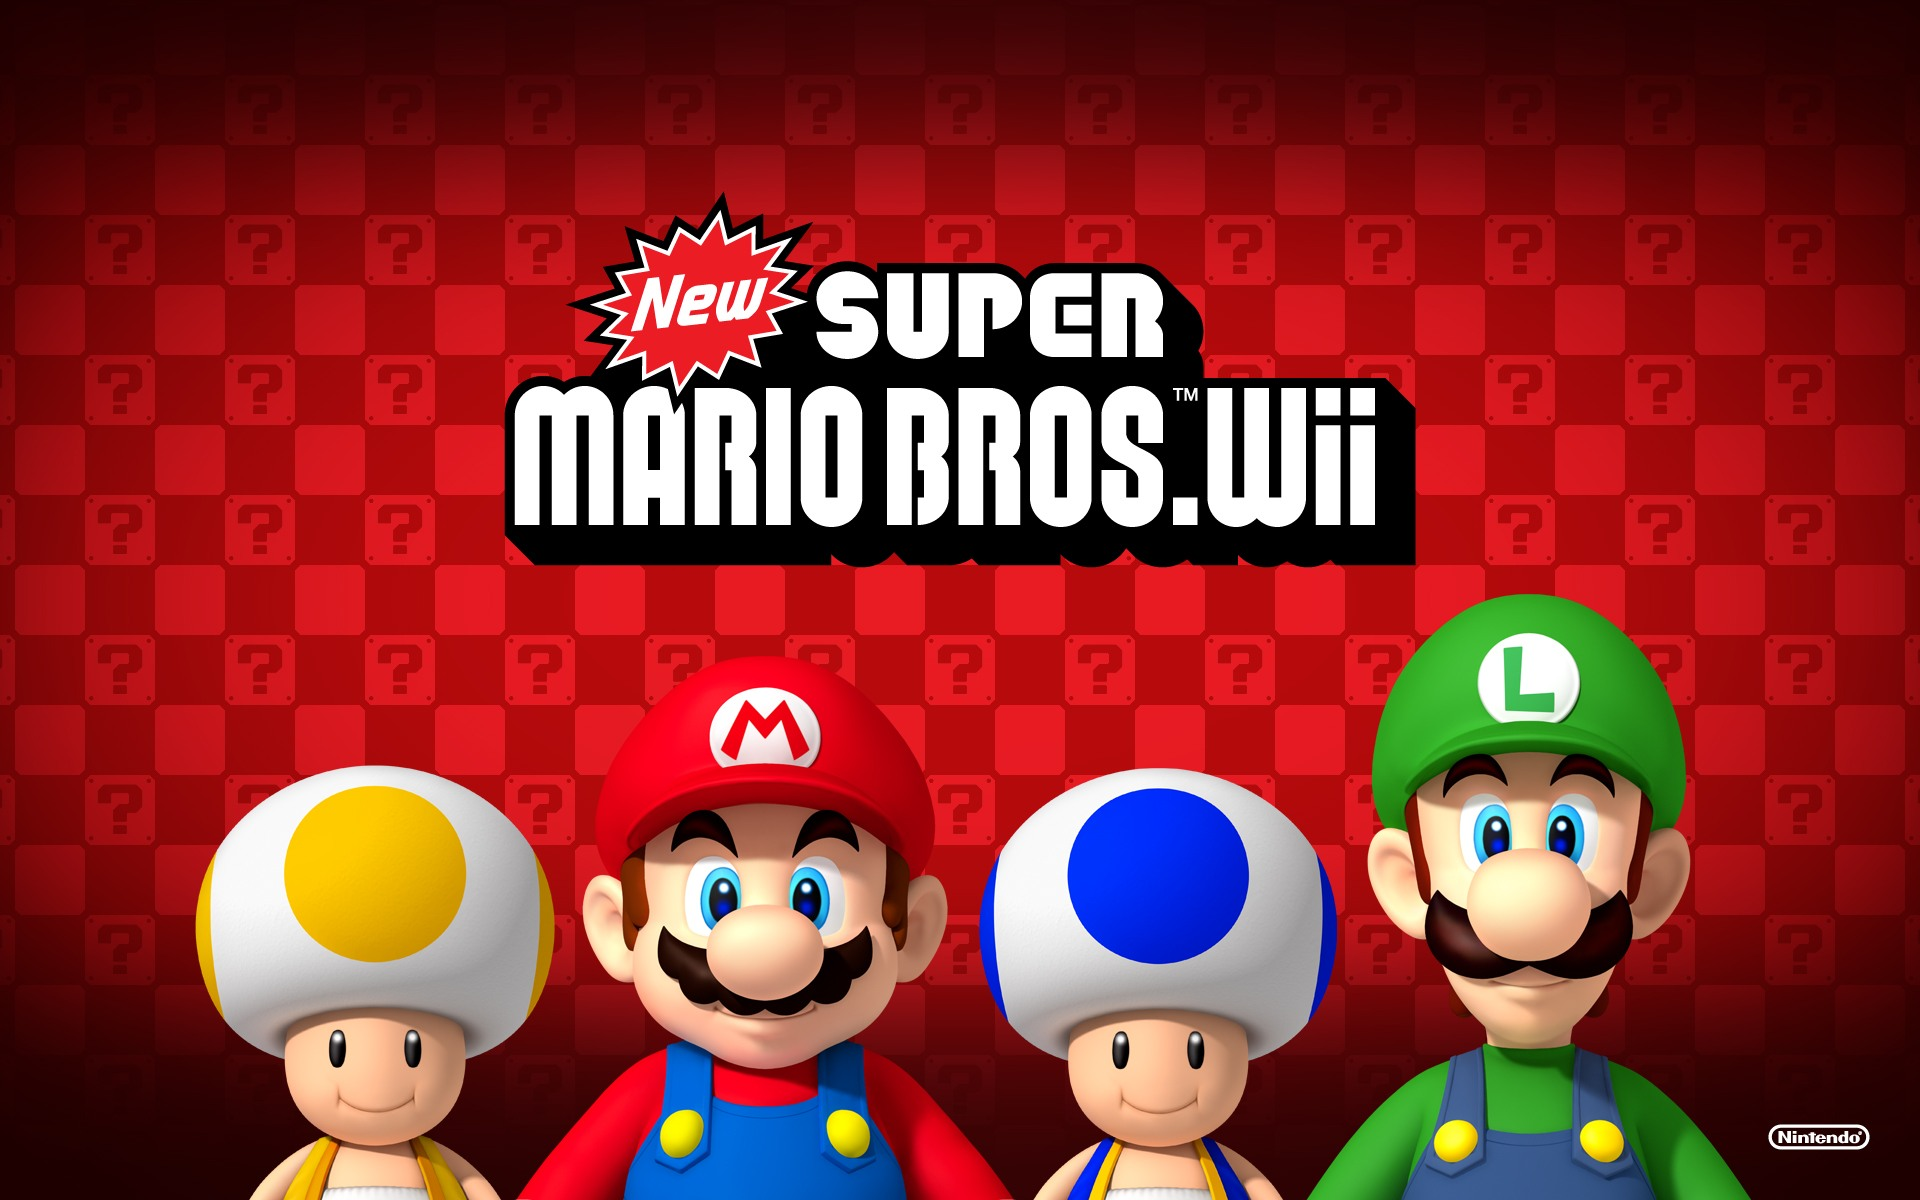 ws_New_Super_Mario_Bros._Wii_1920x1200